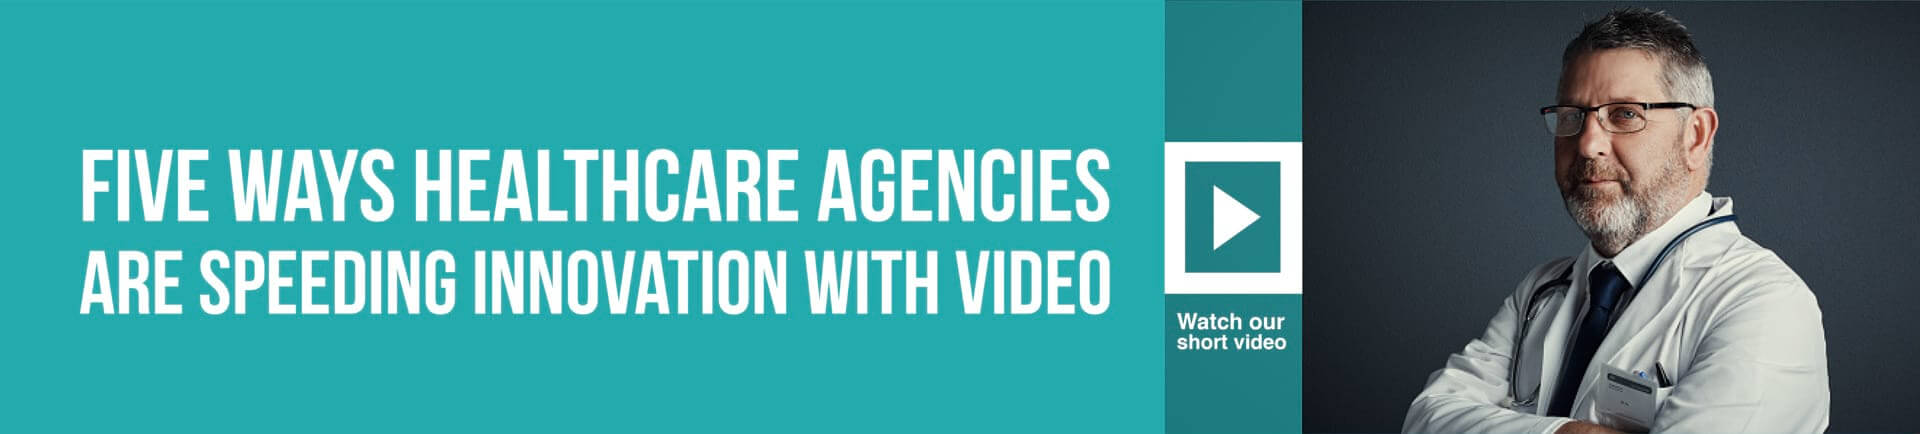 five ways healthcare agencies are speeding innovation with video